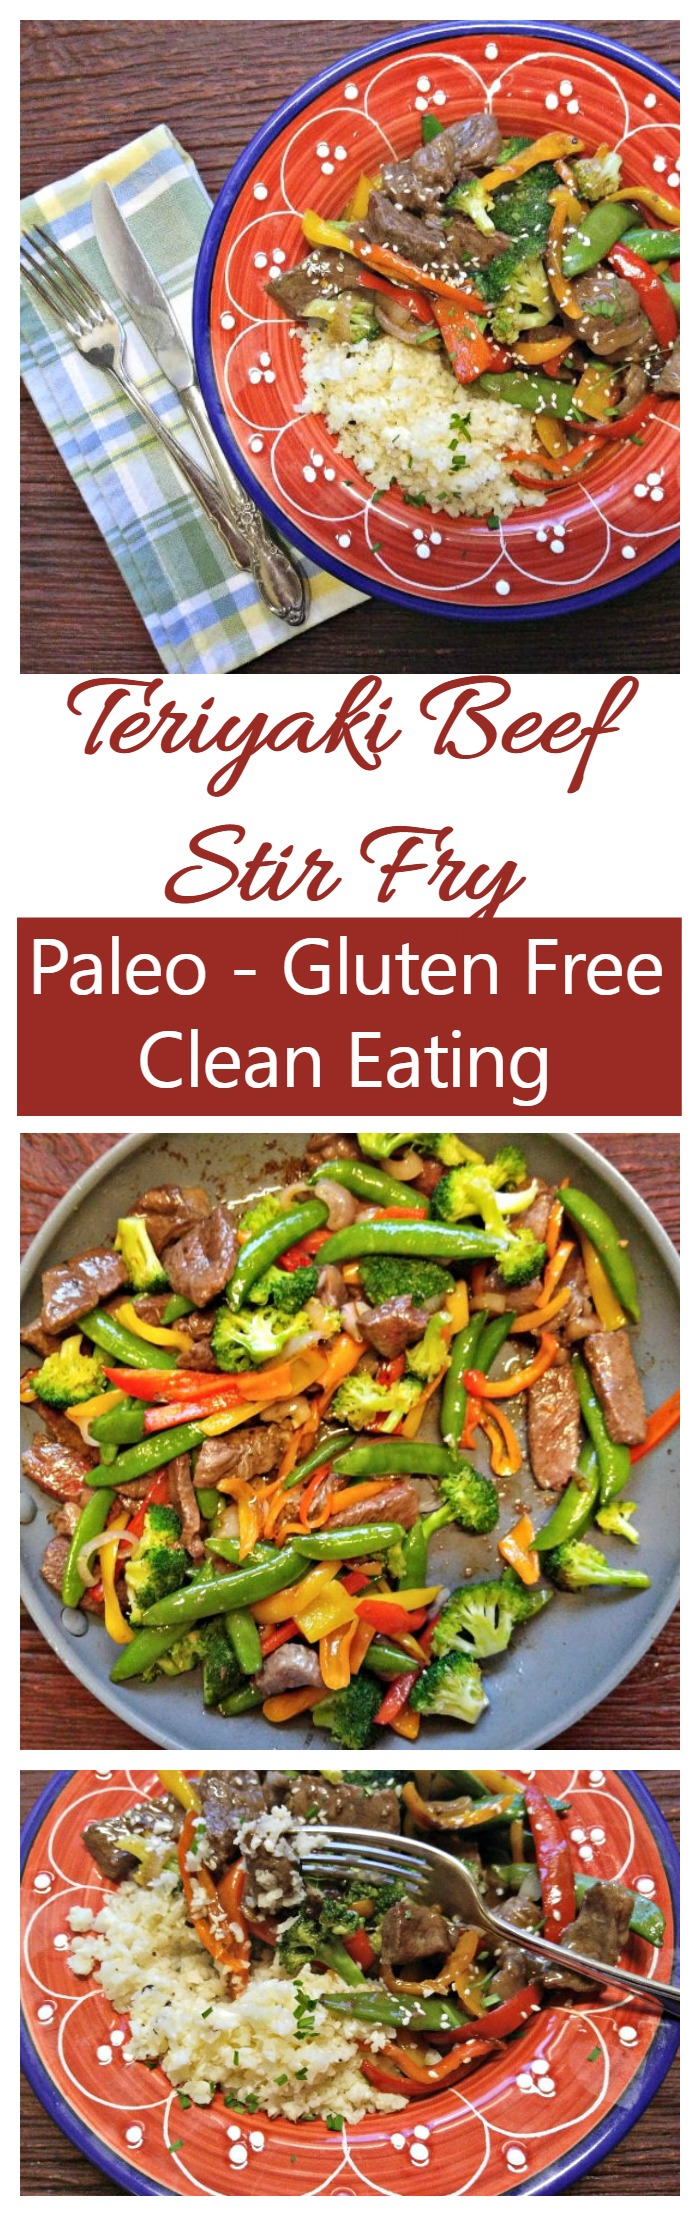 "This teriyaki beef stir fry is a clean eating recipe that fits a Paleo or gluten free diet. Cooked cauliflower makes the ""rice"" for a healthy version of this traditional favorite."